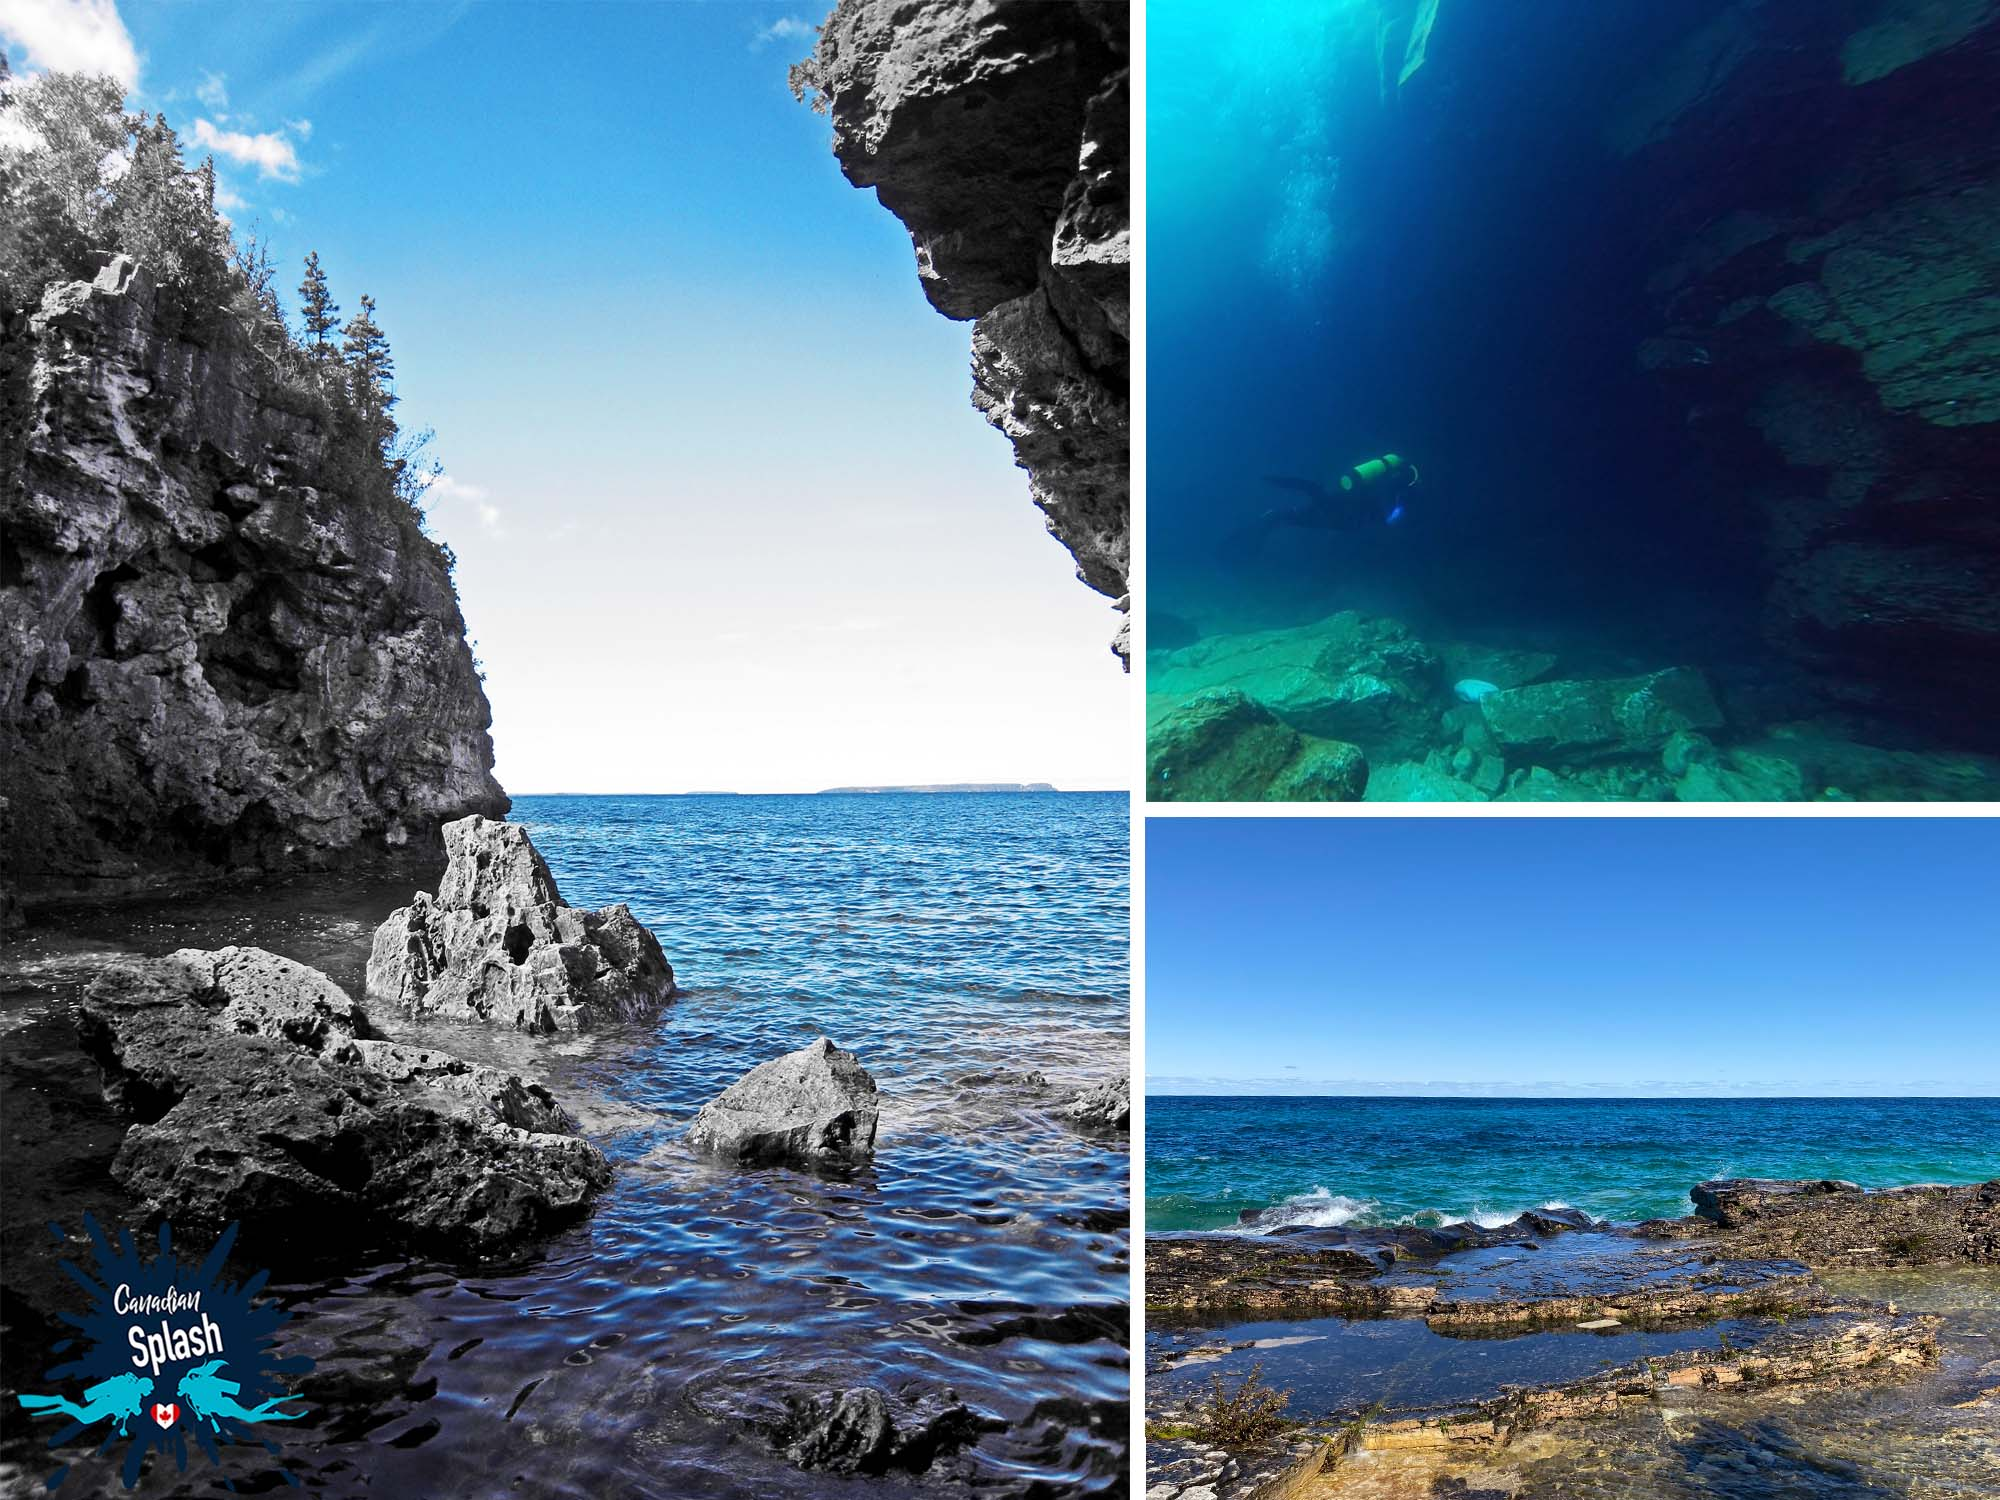 The Grotto Dive Site Cliffs And Underwater View, Tobermory, Ontario, Scuba Diving Canada